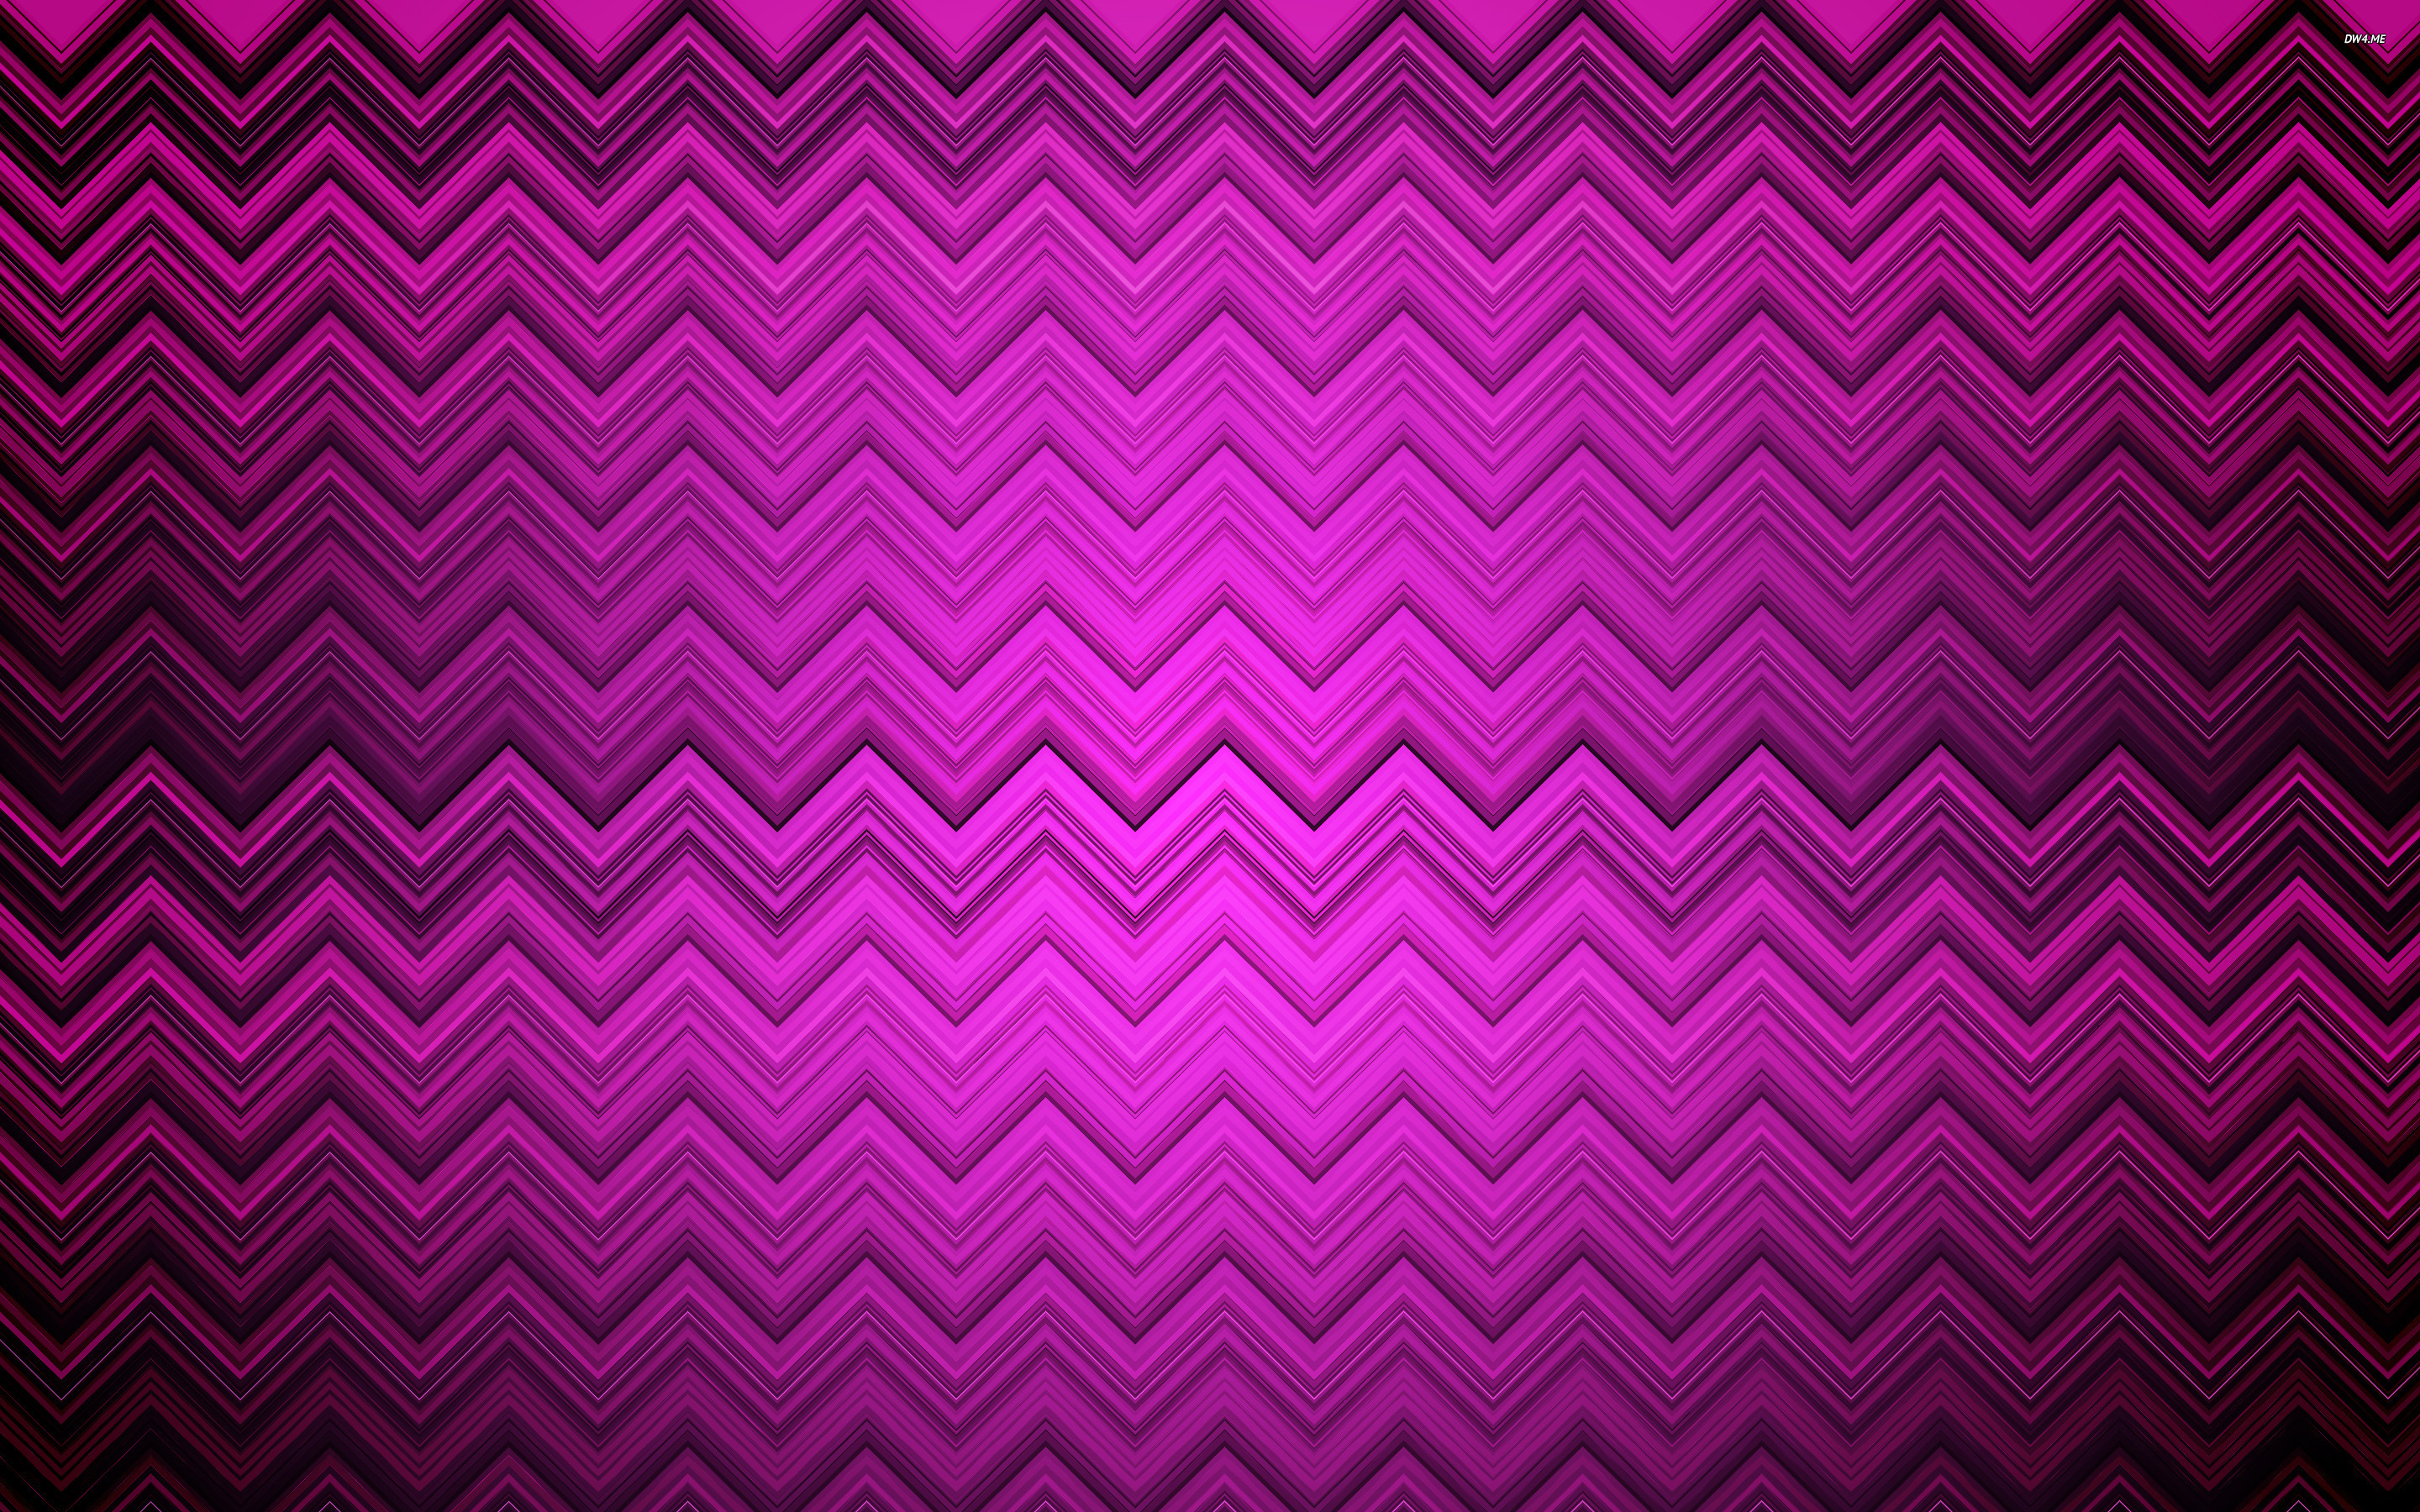 Purple ZigZag pattern wallpaper   Abstract wallpapers   1236 2880x1800